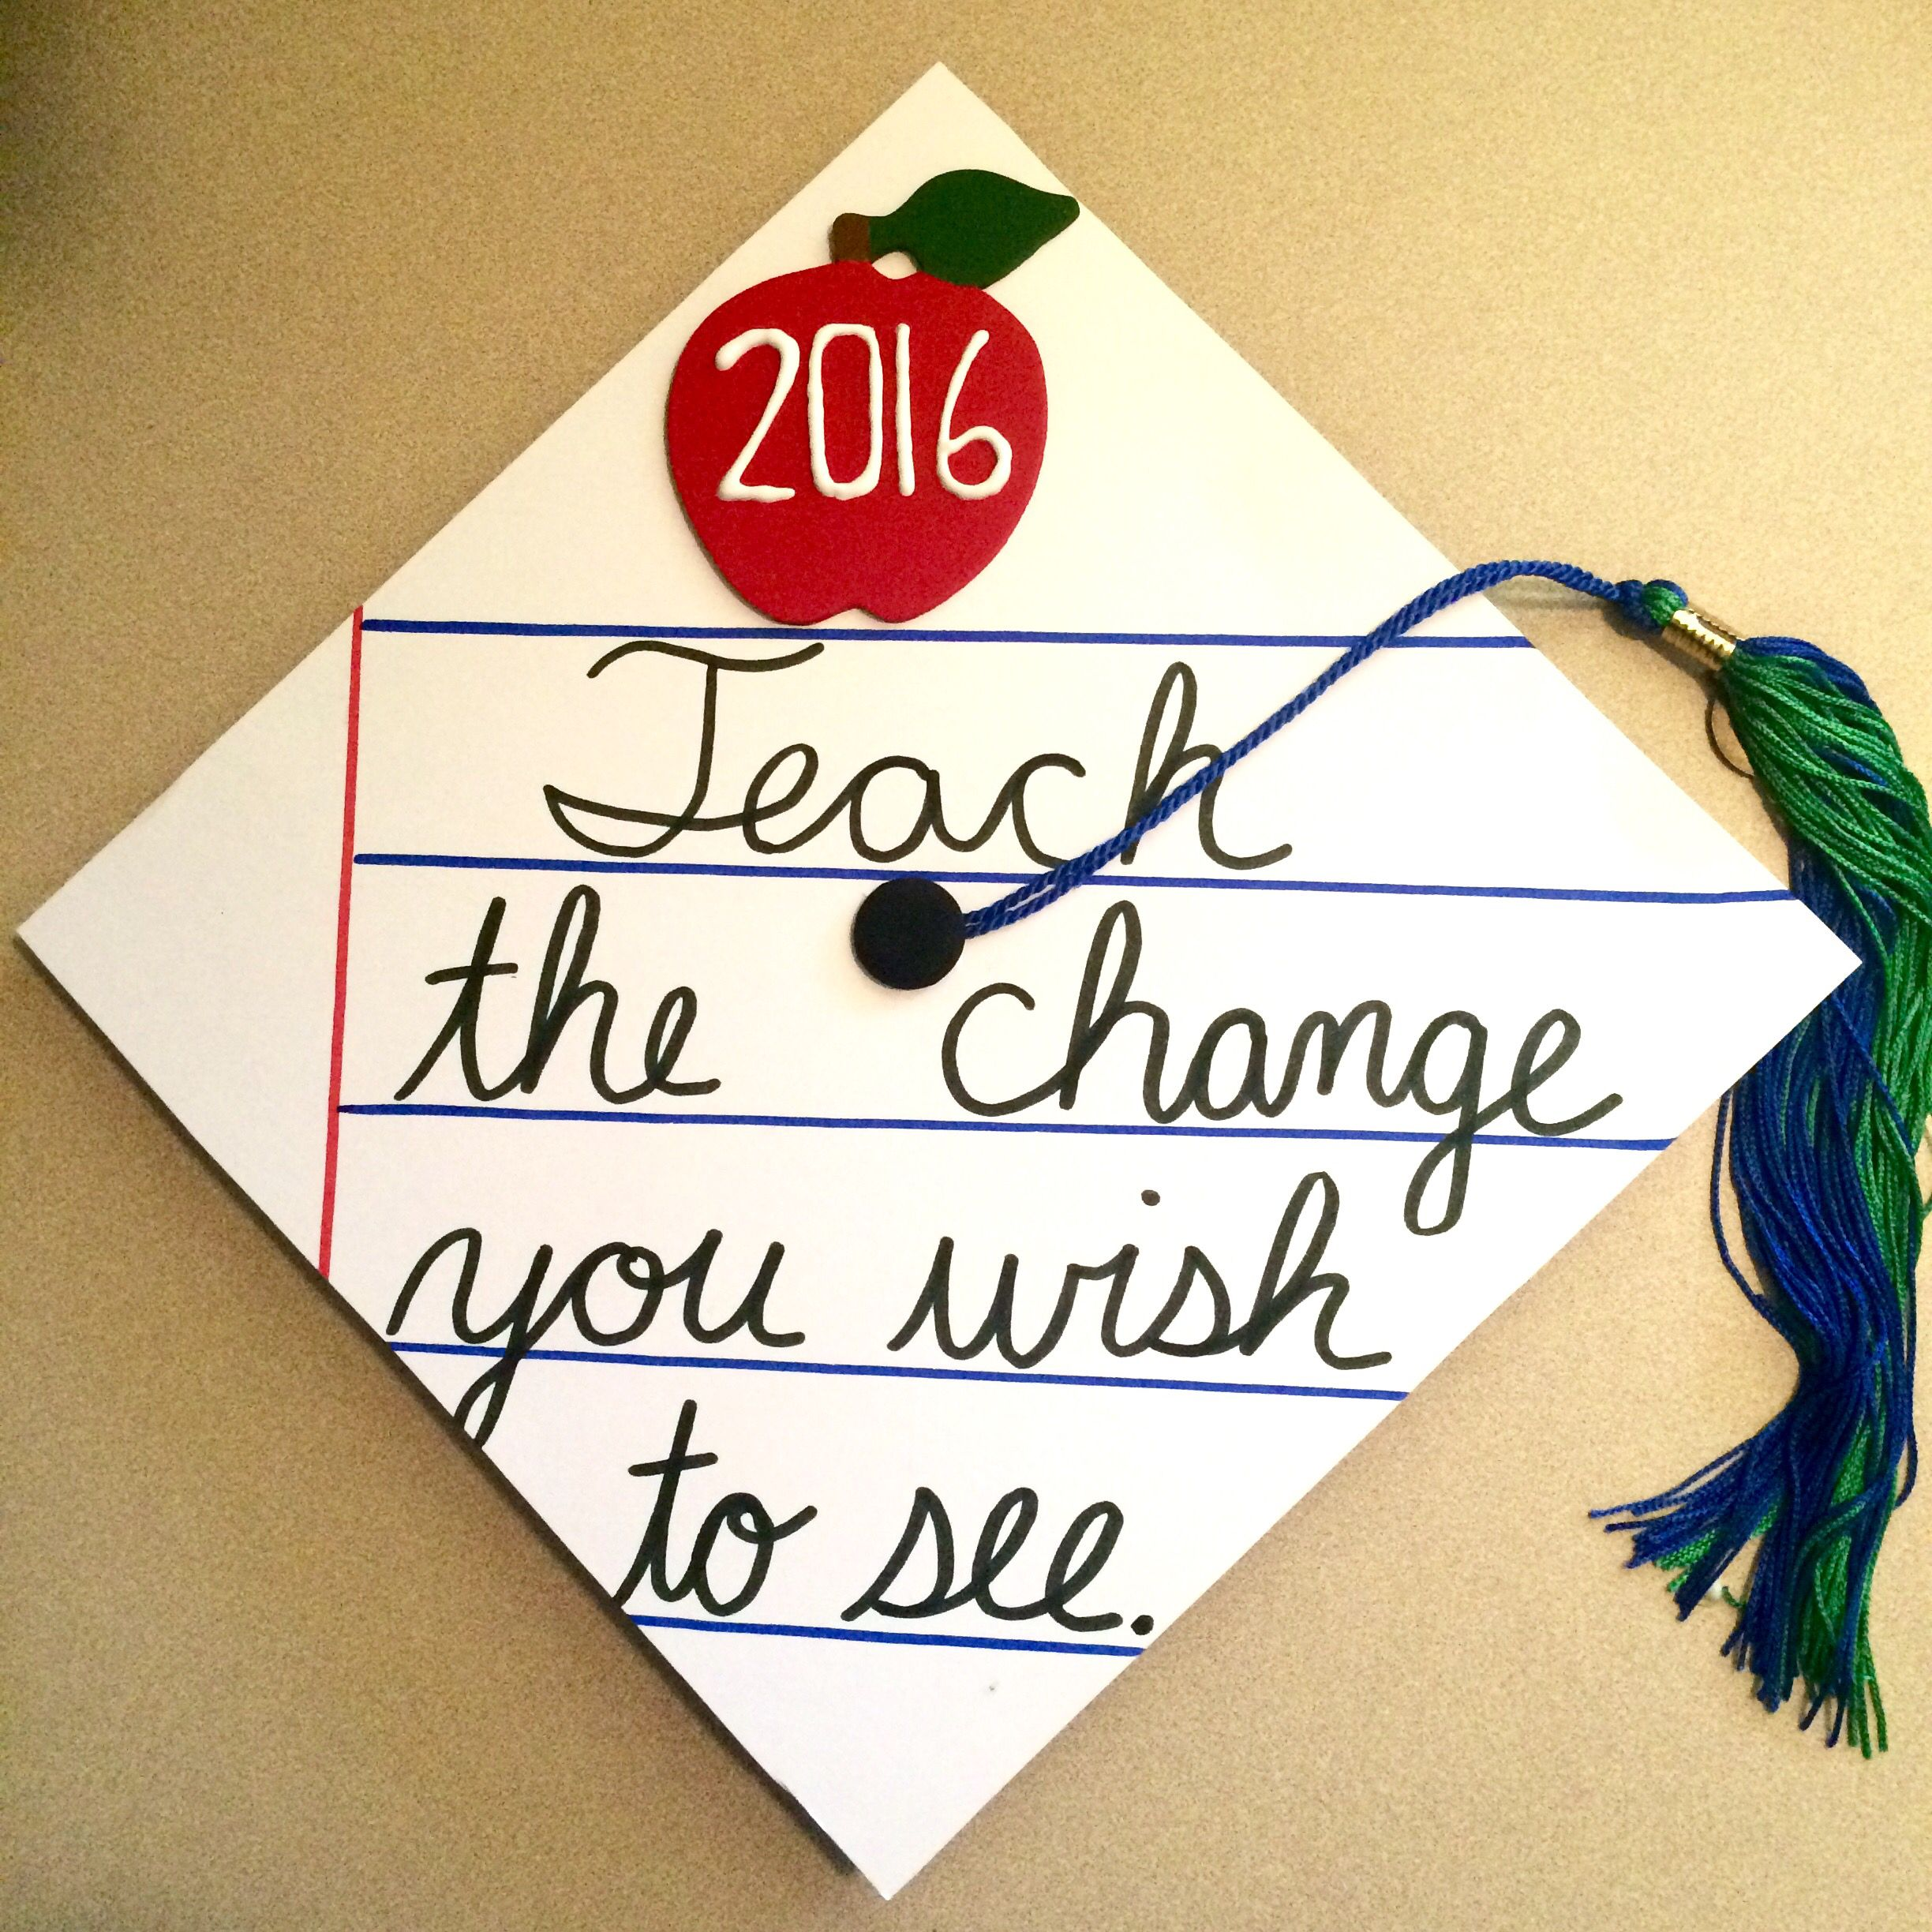 Decorating graduation cap ideas for teachers - Cap Decorations My Cap Unique Teacher College Graduation Cap Cursive Teach The Change You Wish